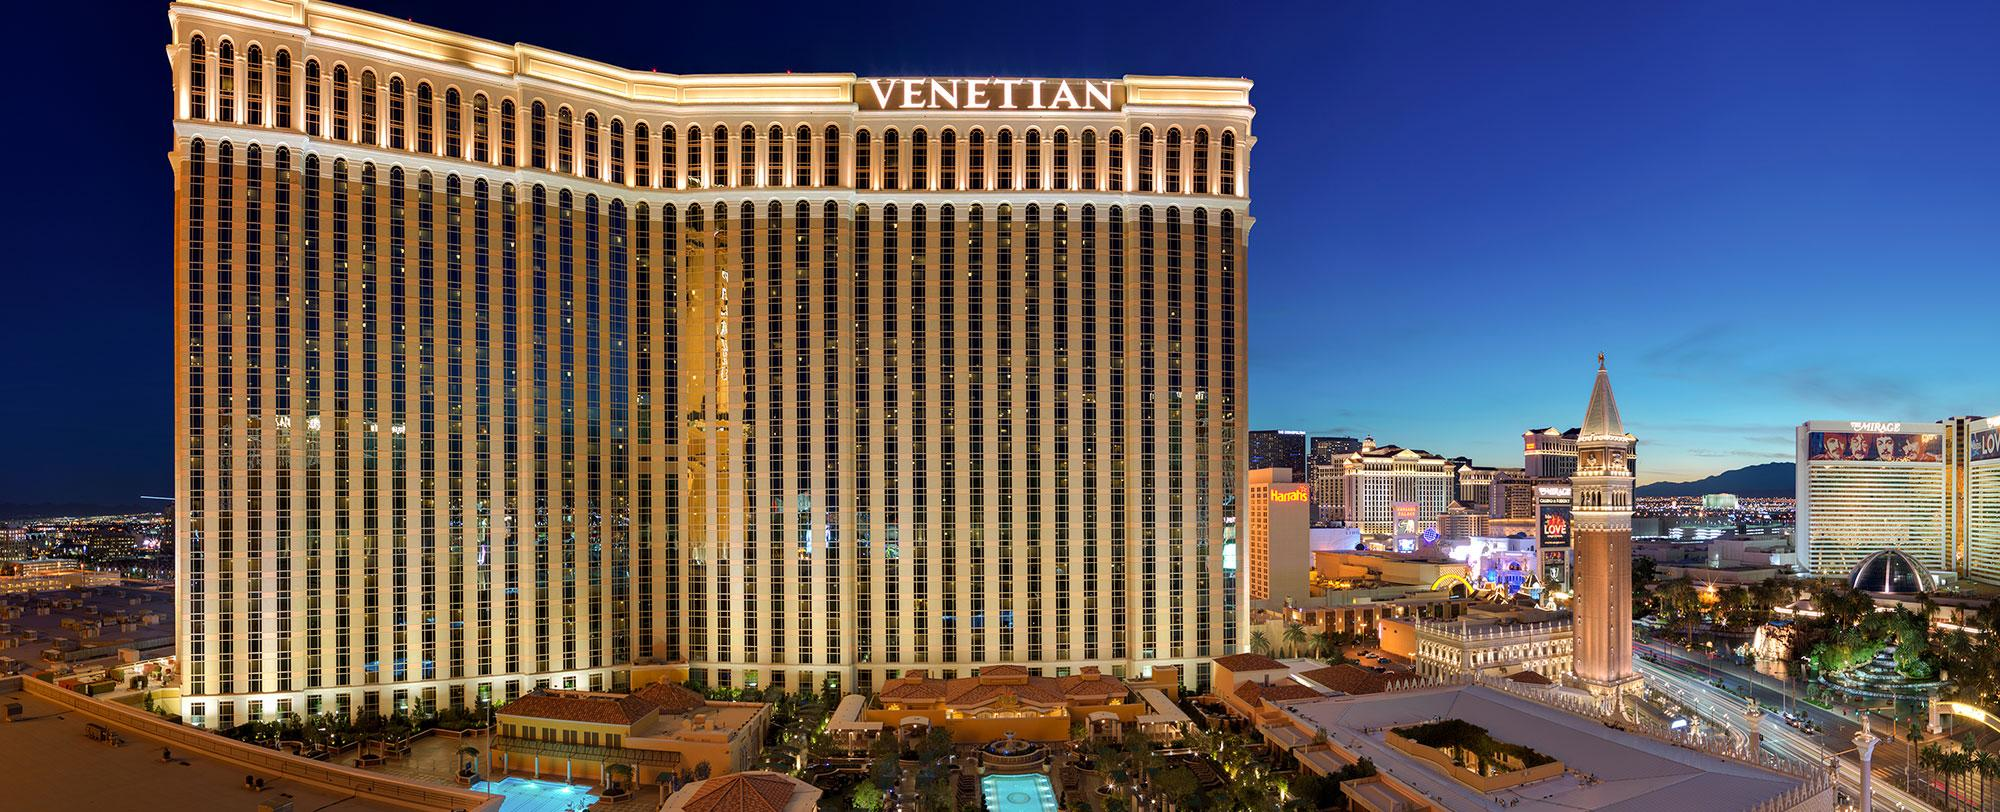 The Venetian and Sands Convention Center will soon have new owners.